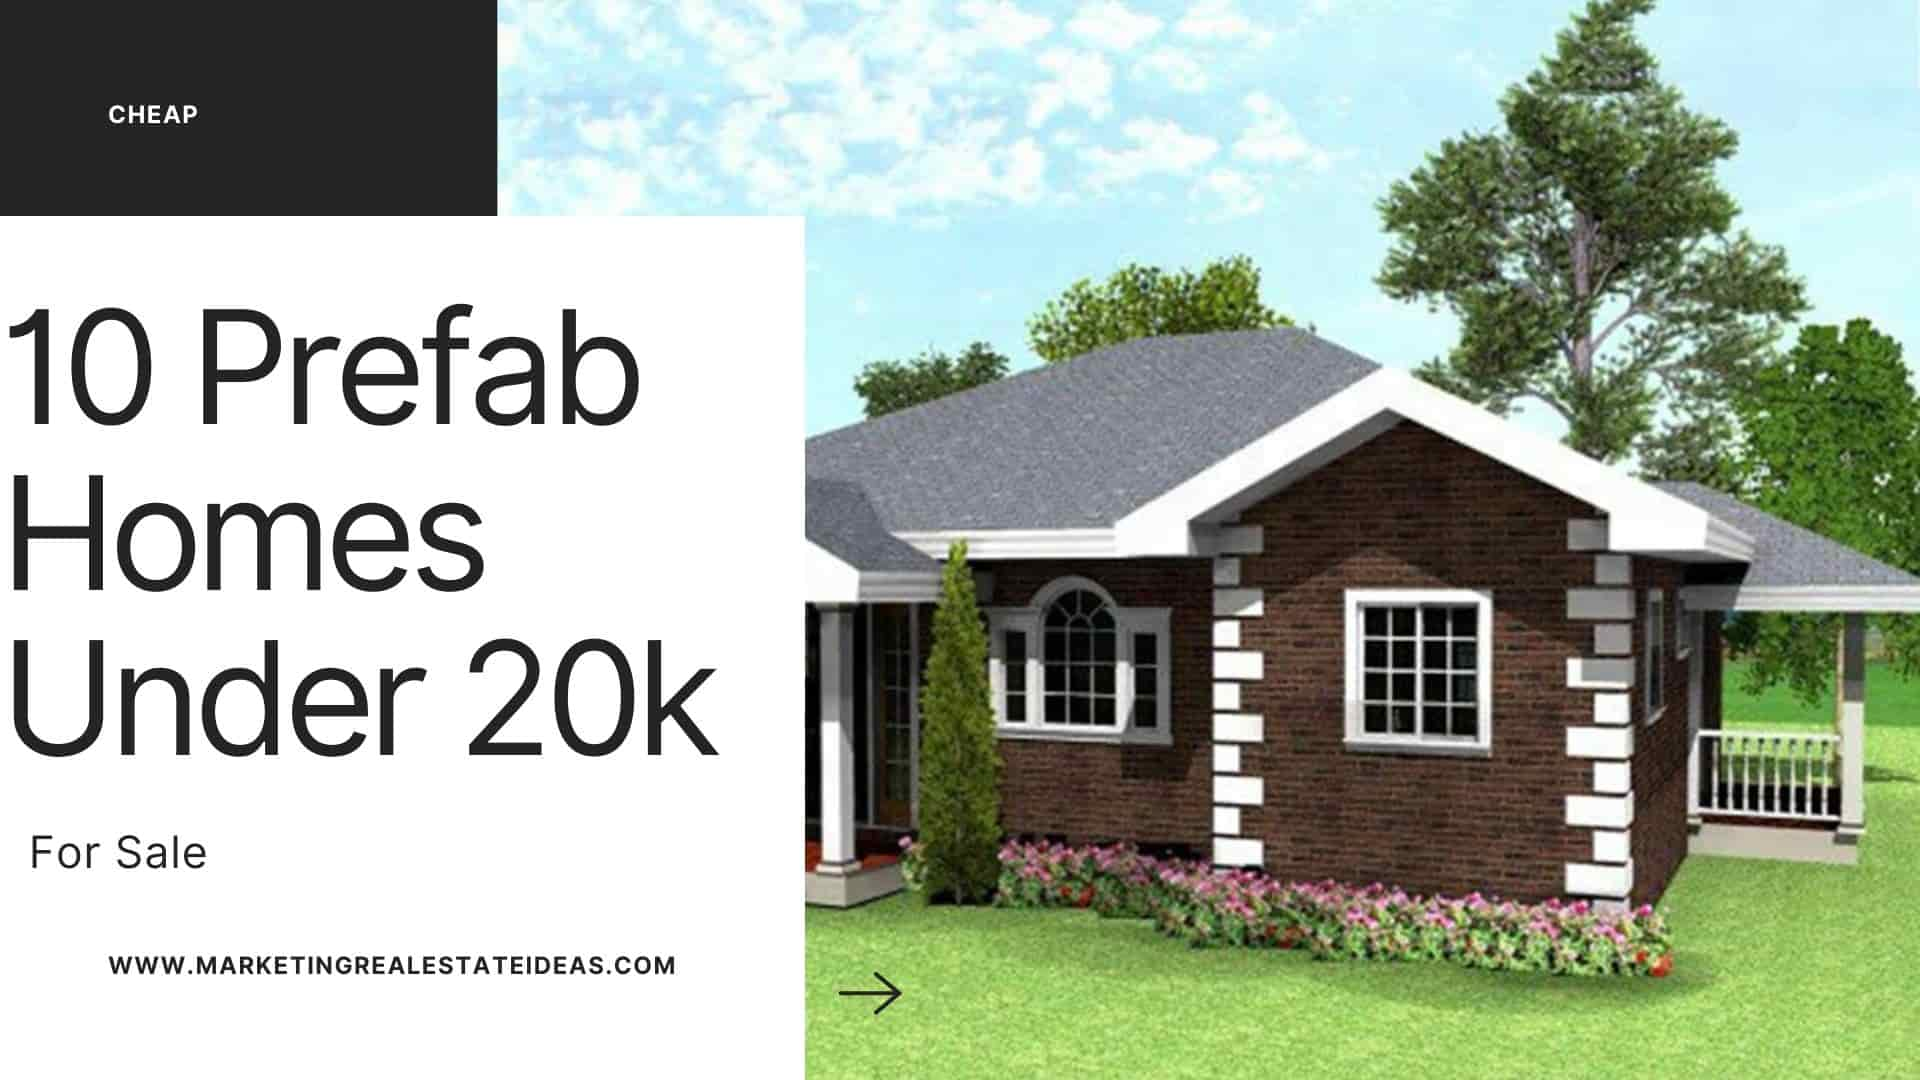 10 Affordable Prefab Homes Under 20k For Sale Online Cheapest Rate